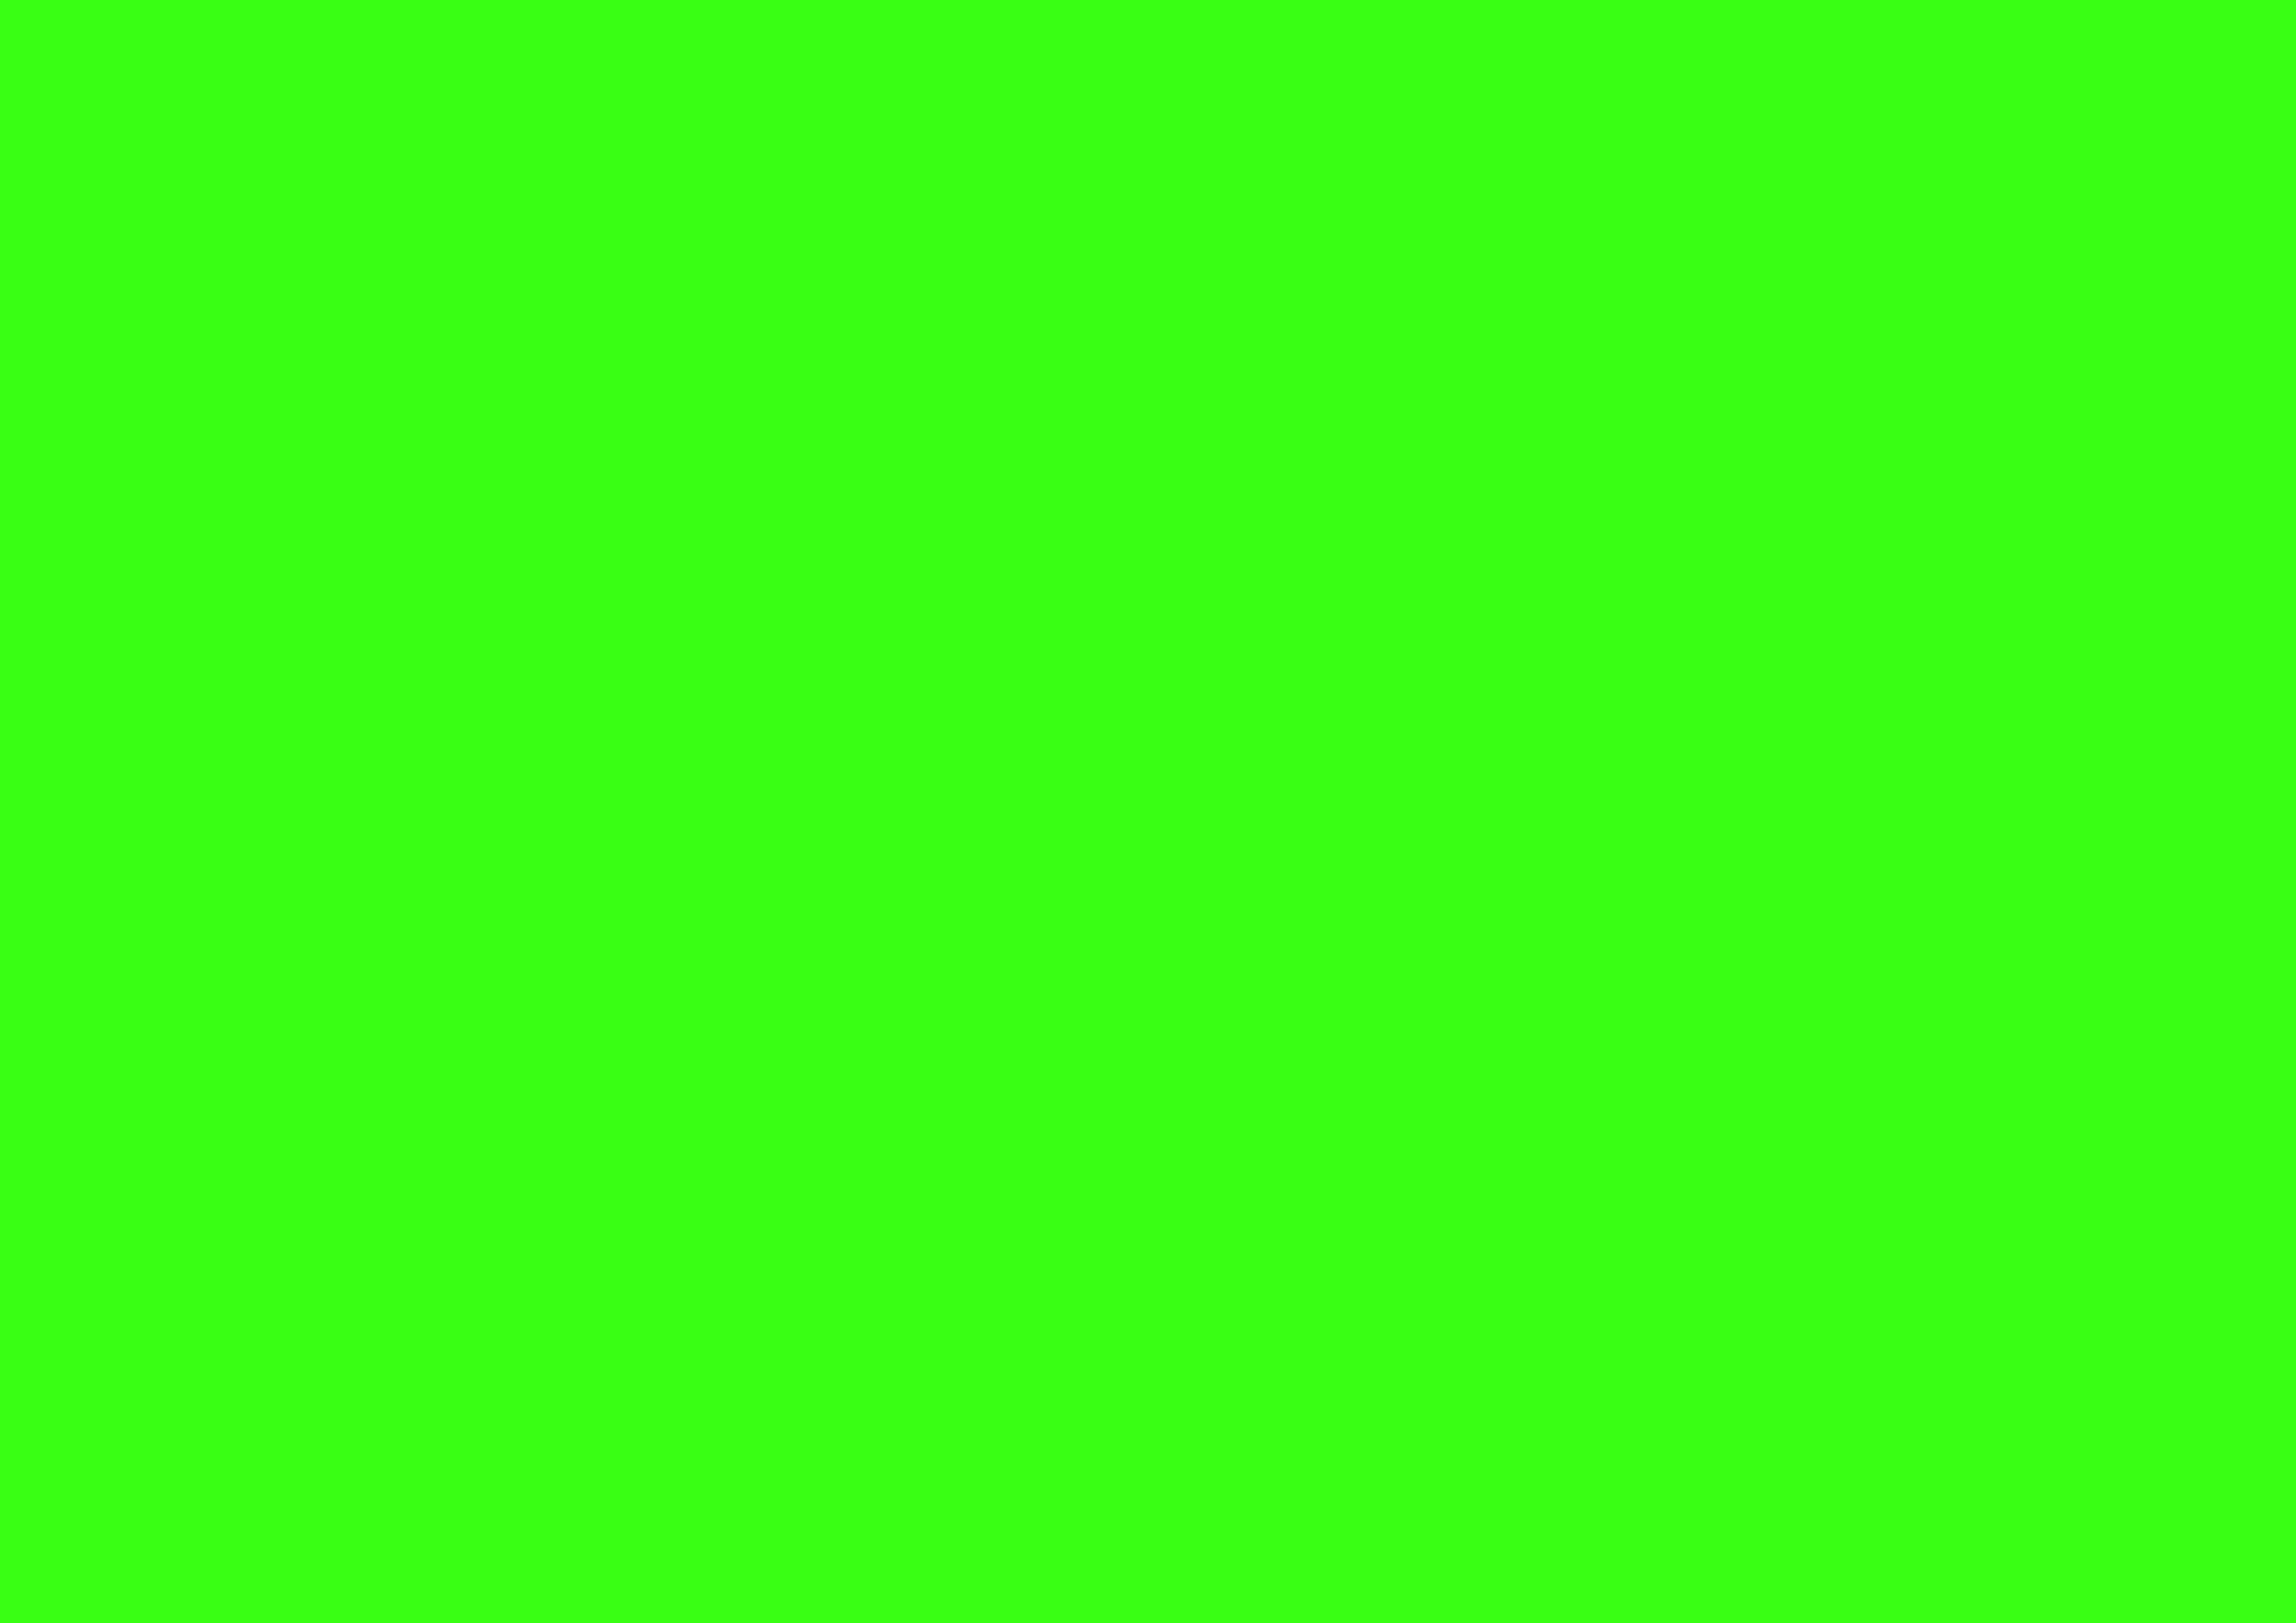 3508x2480 Neon Green Solid Color Background